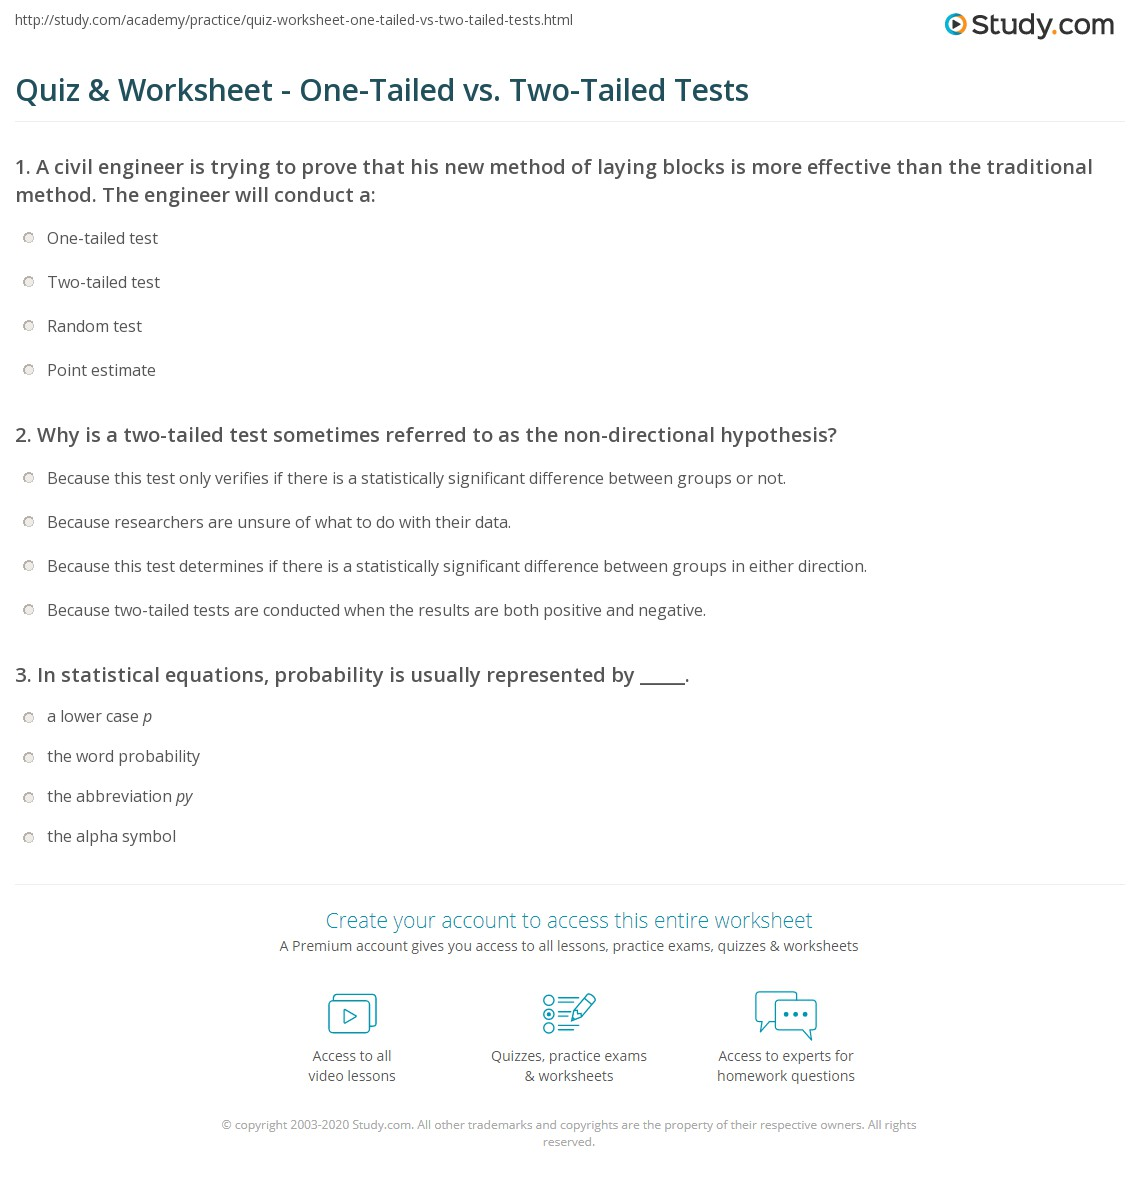 Quiz Worksheet One Tailed Vs Two Tailed Tests Study